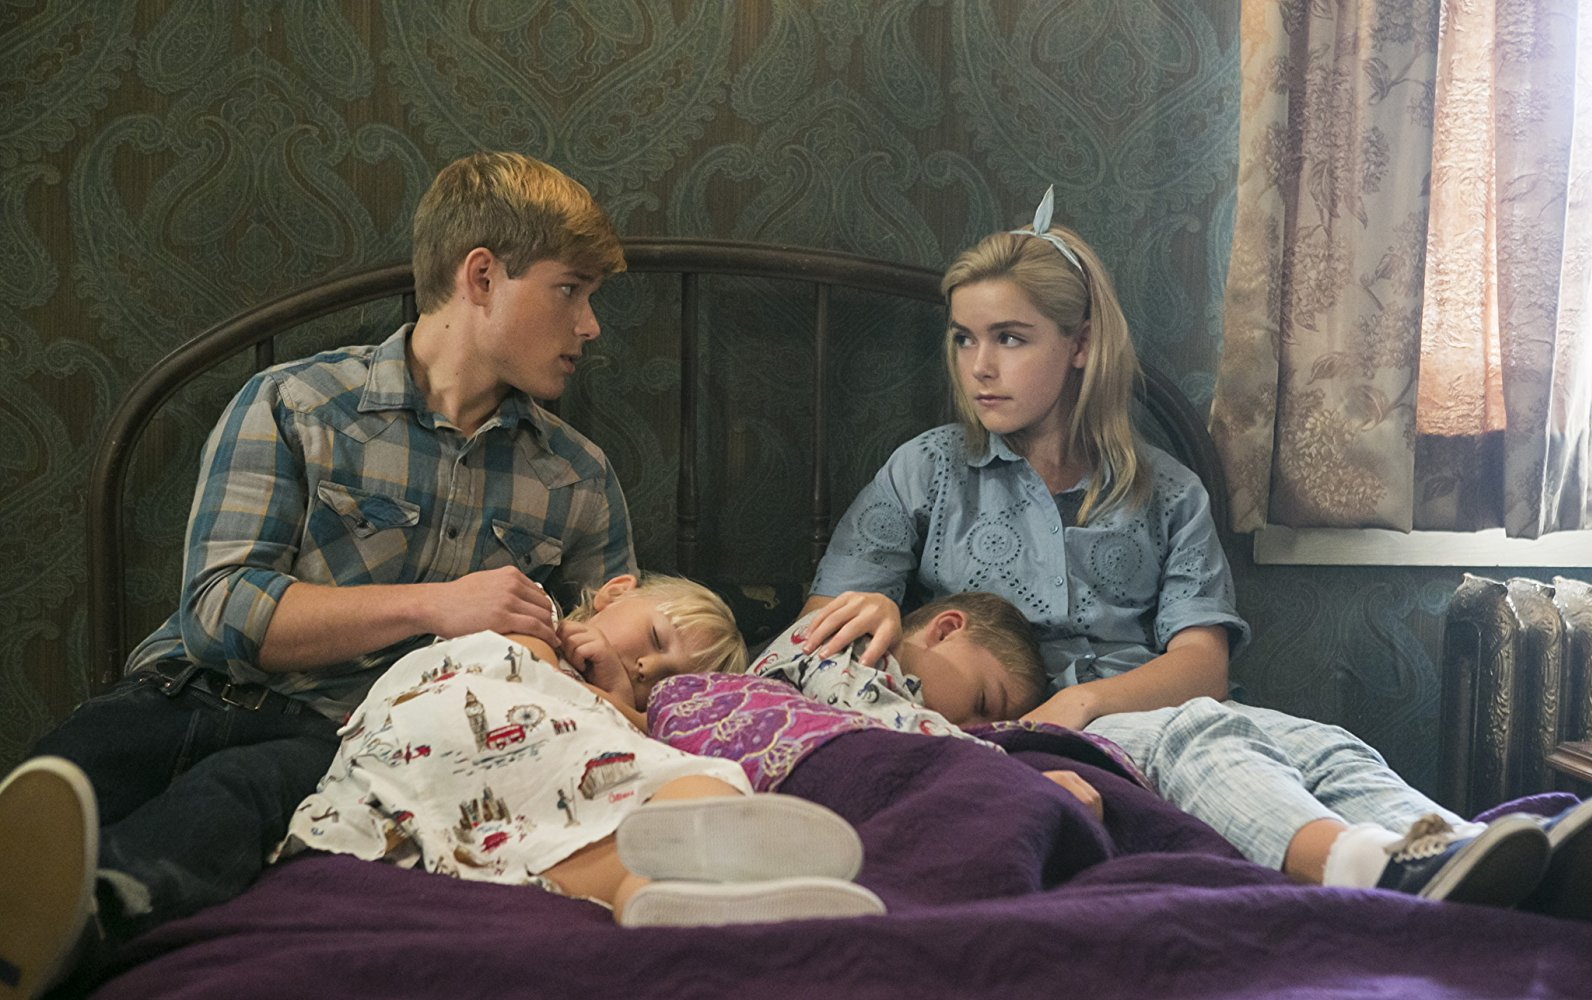 Brother and sister Mason Dye and Kiernan Shipka in Flowers in the Attic (2014)